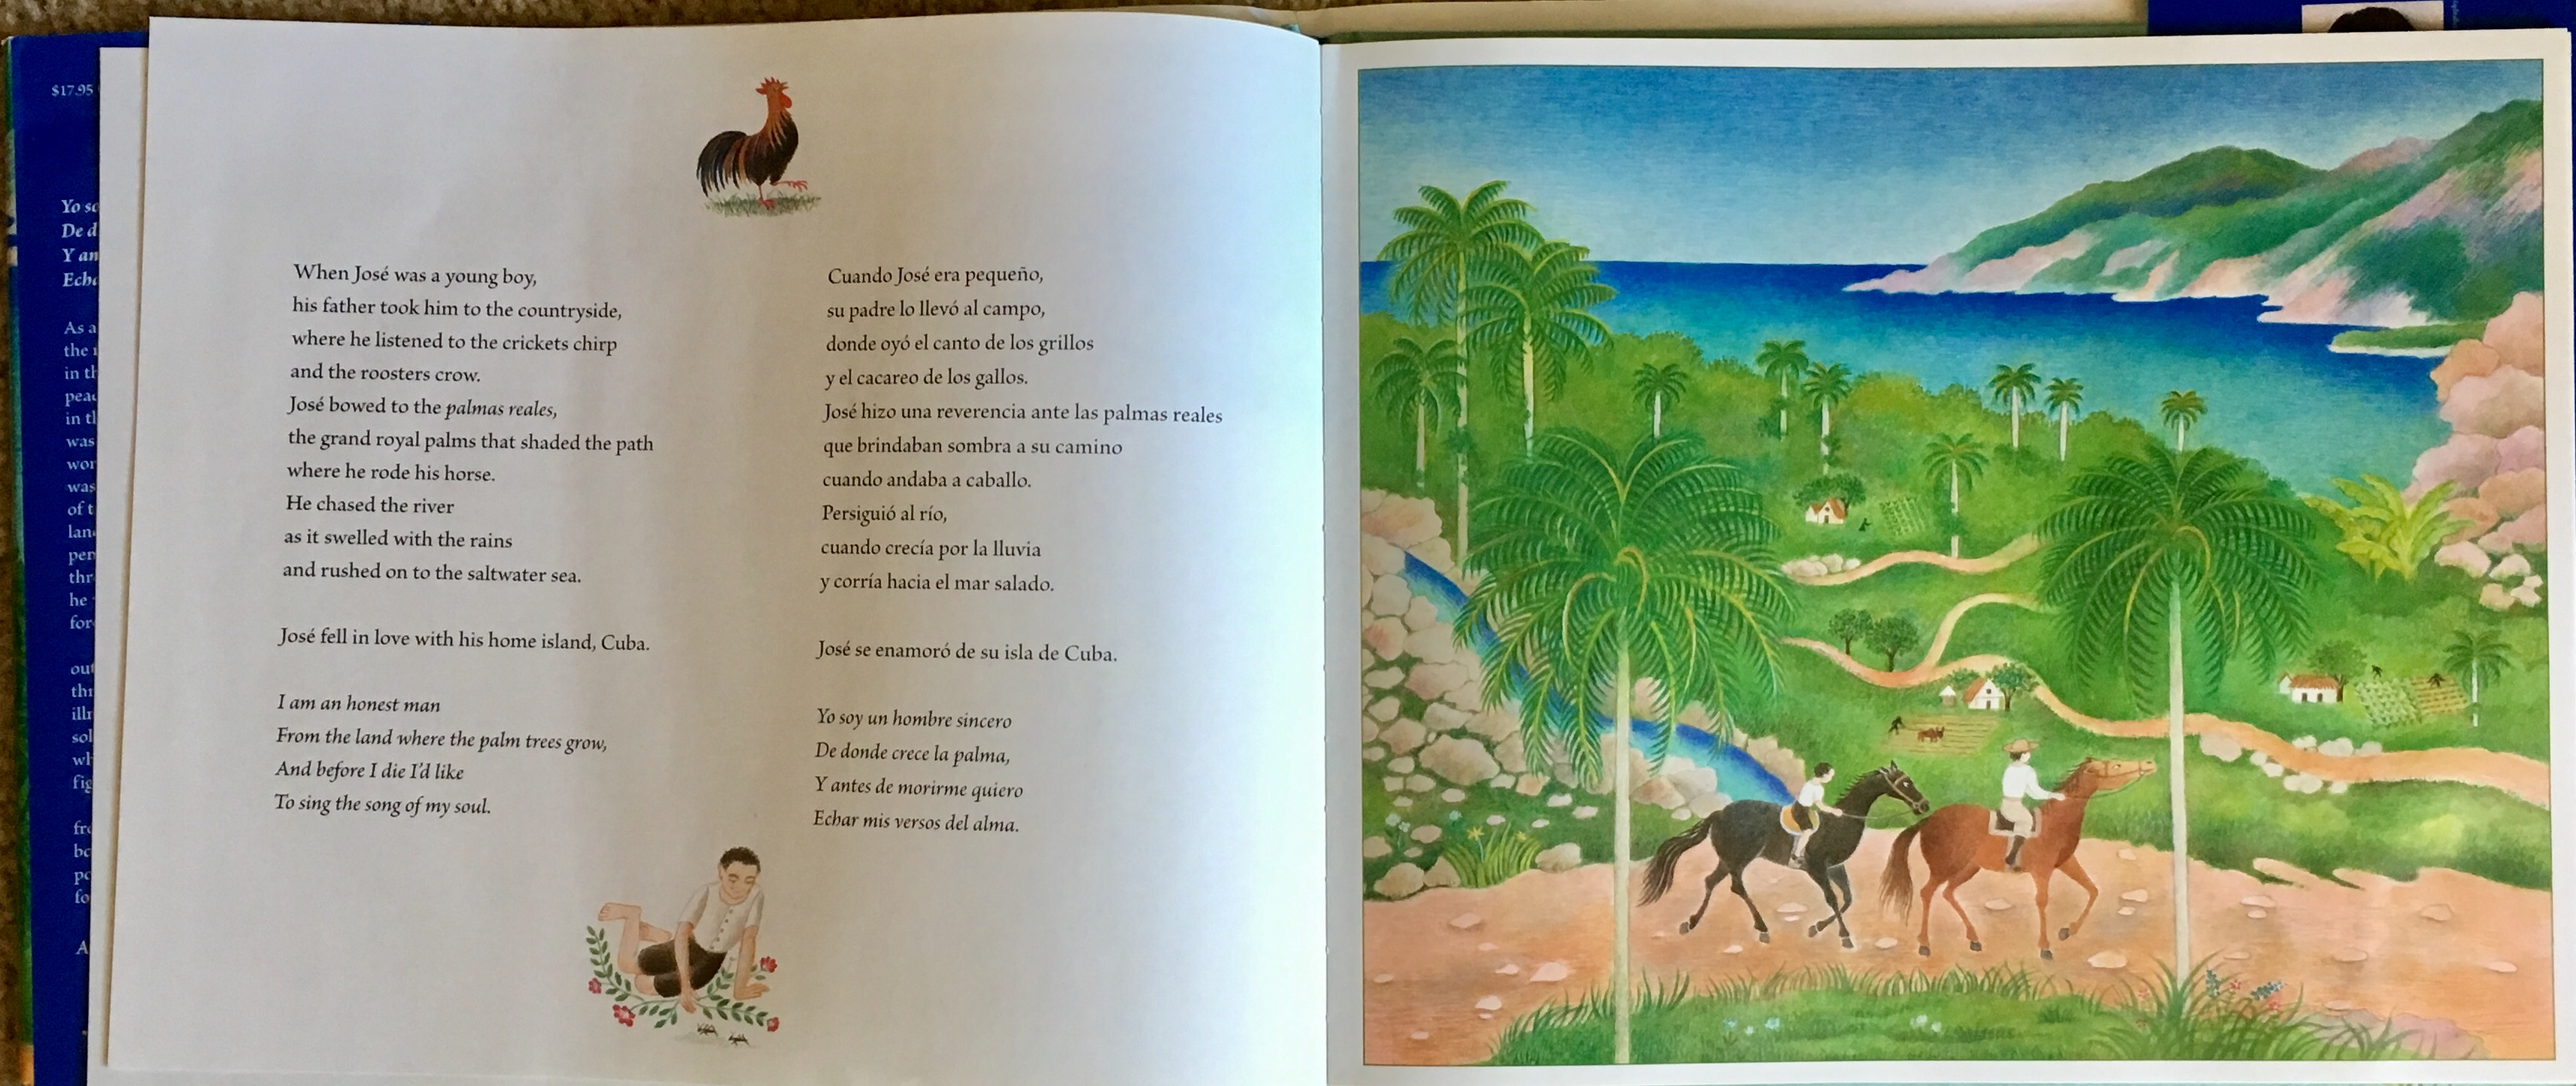 Cuba: Marti's Song for Freedom - Multicultural Children's